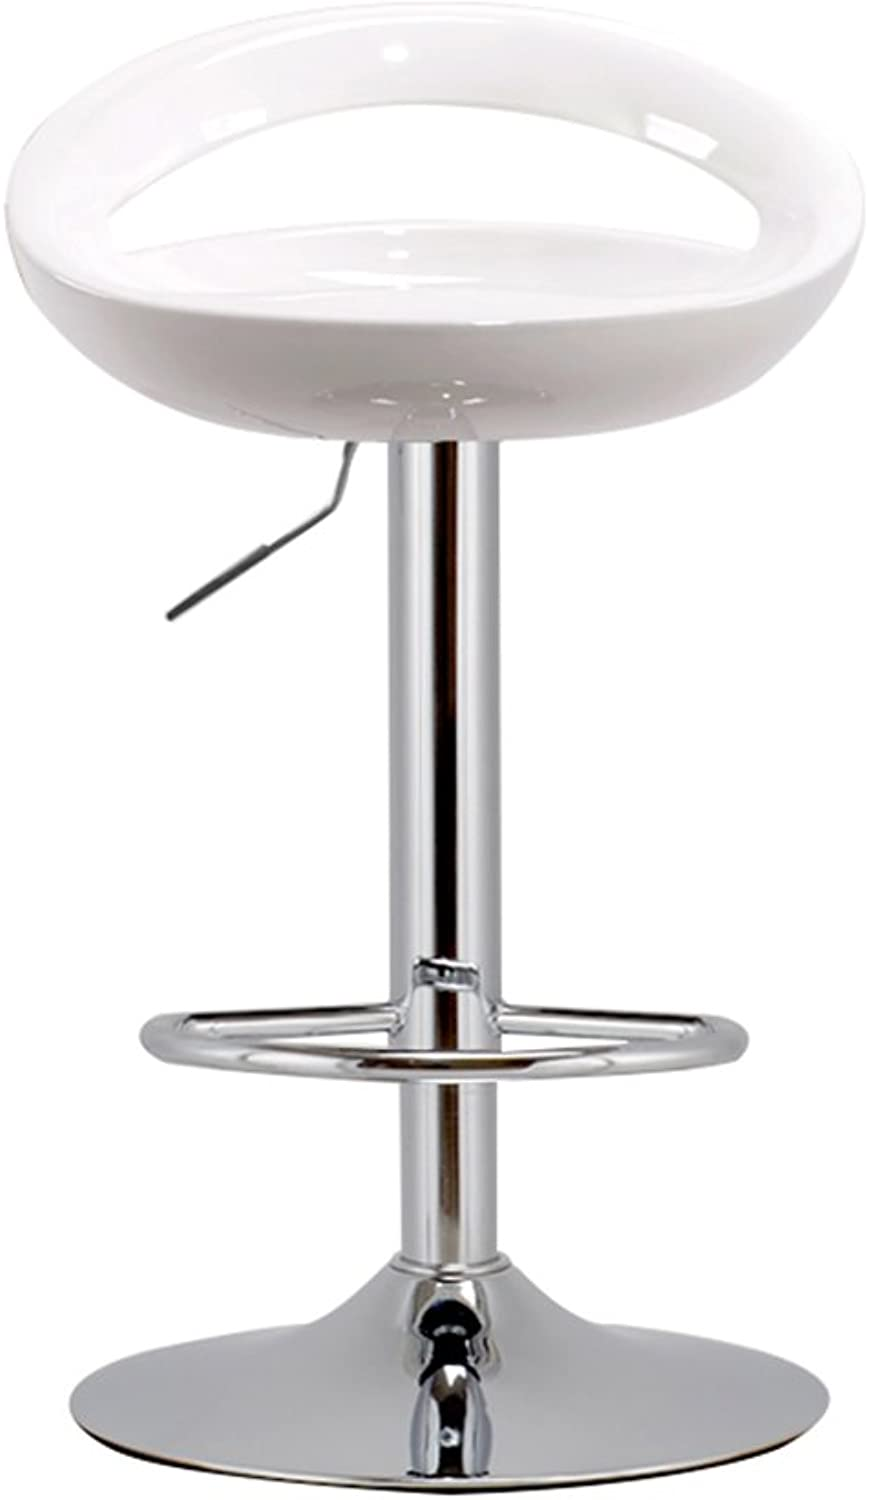 Bar Chair European Home Bar Chair Stylish and Simple Chair Lift High Stool Bar Stool 4160-80cm (Multicolor Optional) (color   White)